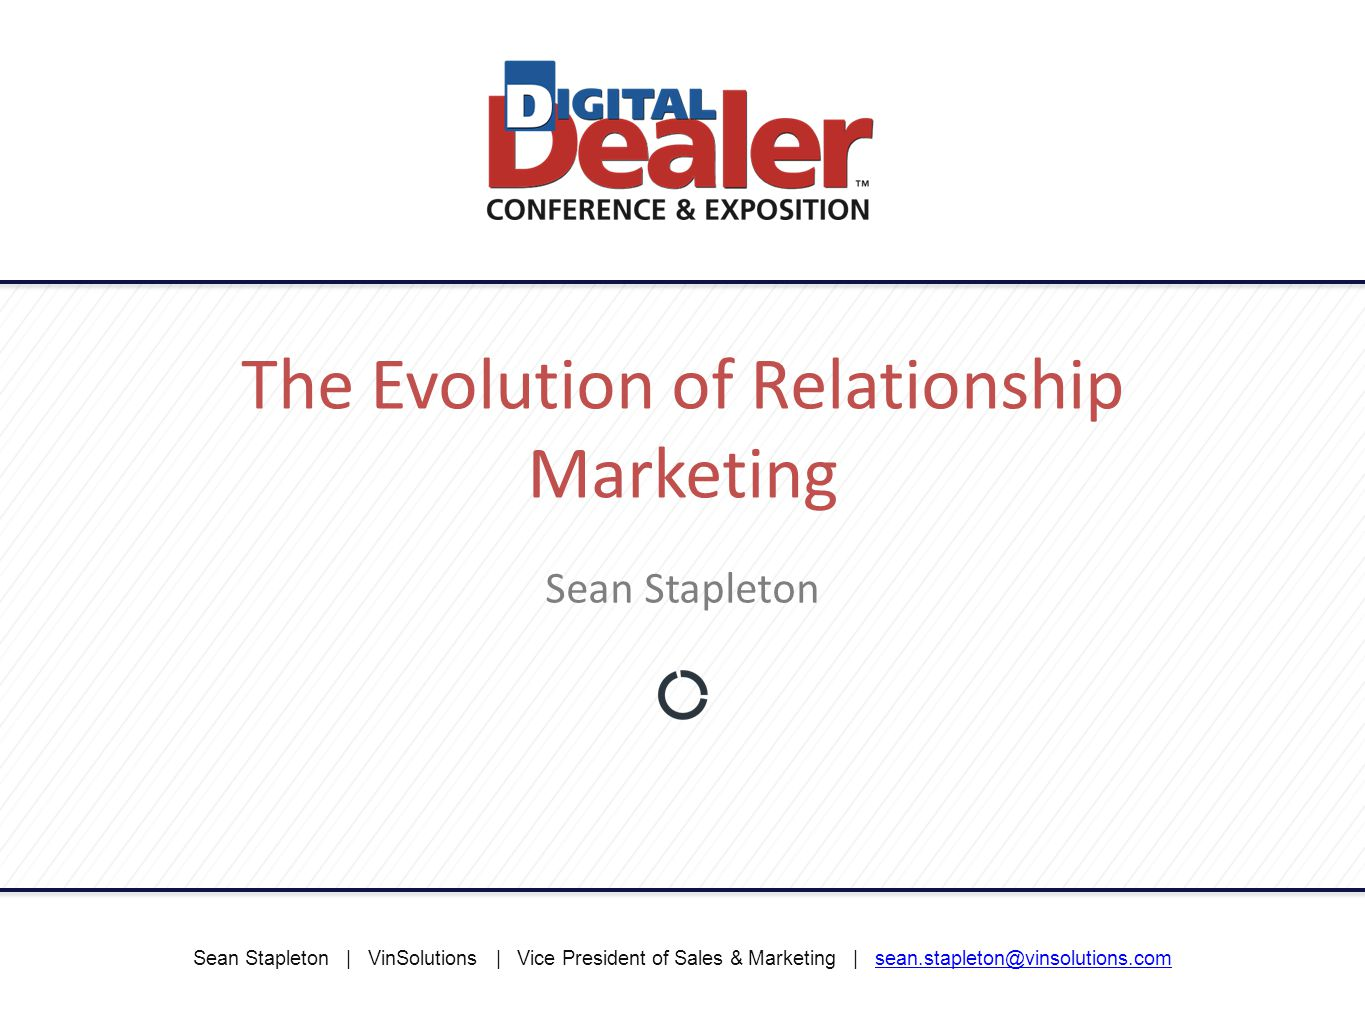 Sean Stapleton | VinSolutions | Vice President of Sales & Marketing | sean.stapleton@vinsolutions.comsean.stapleton@vinsolutions.com The Evolution of Relationship Marketing Sean Stapleton